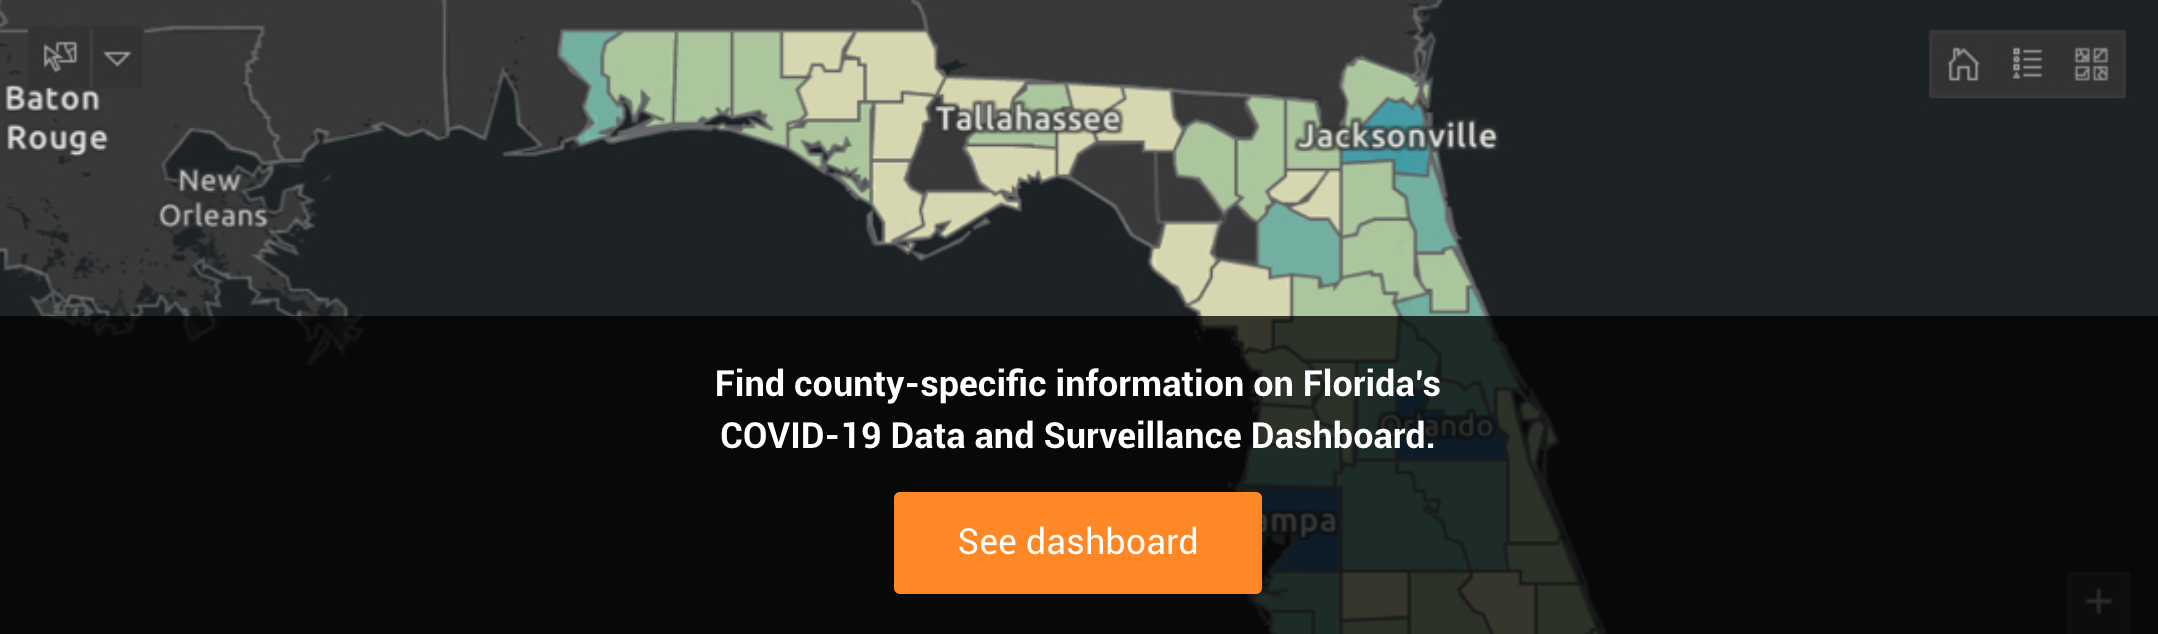 Find county-specific information on Florida's COVID-19 Data and Surveillance Dashboard